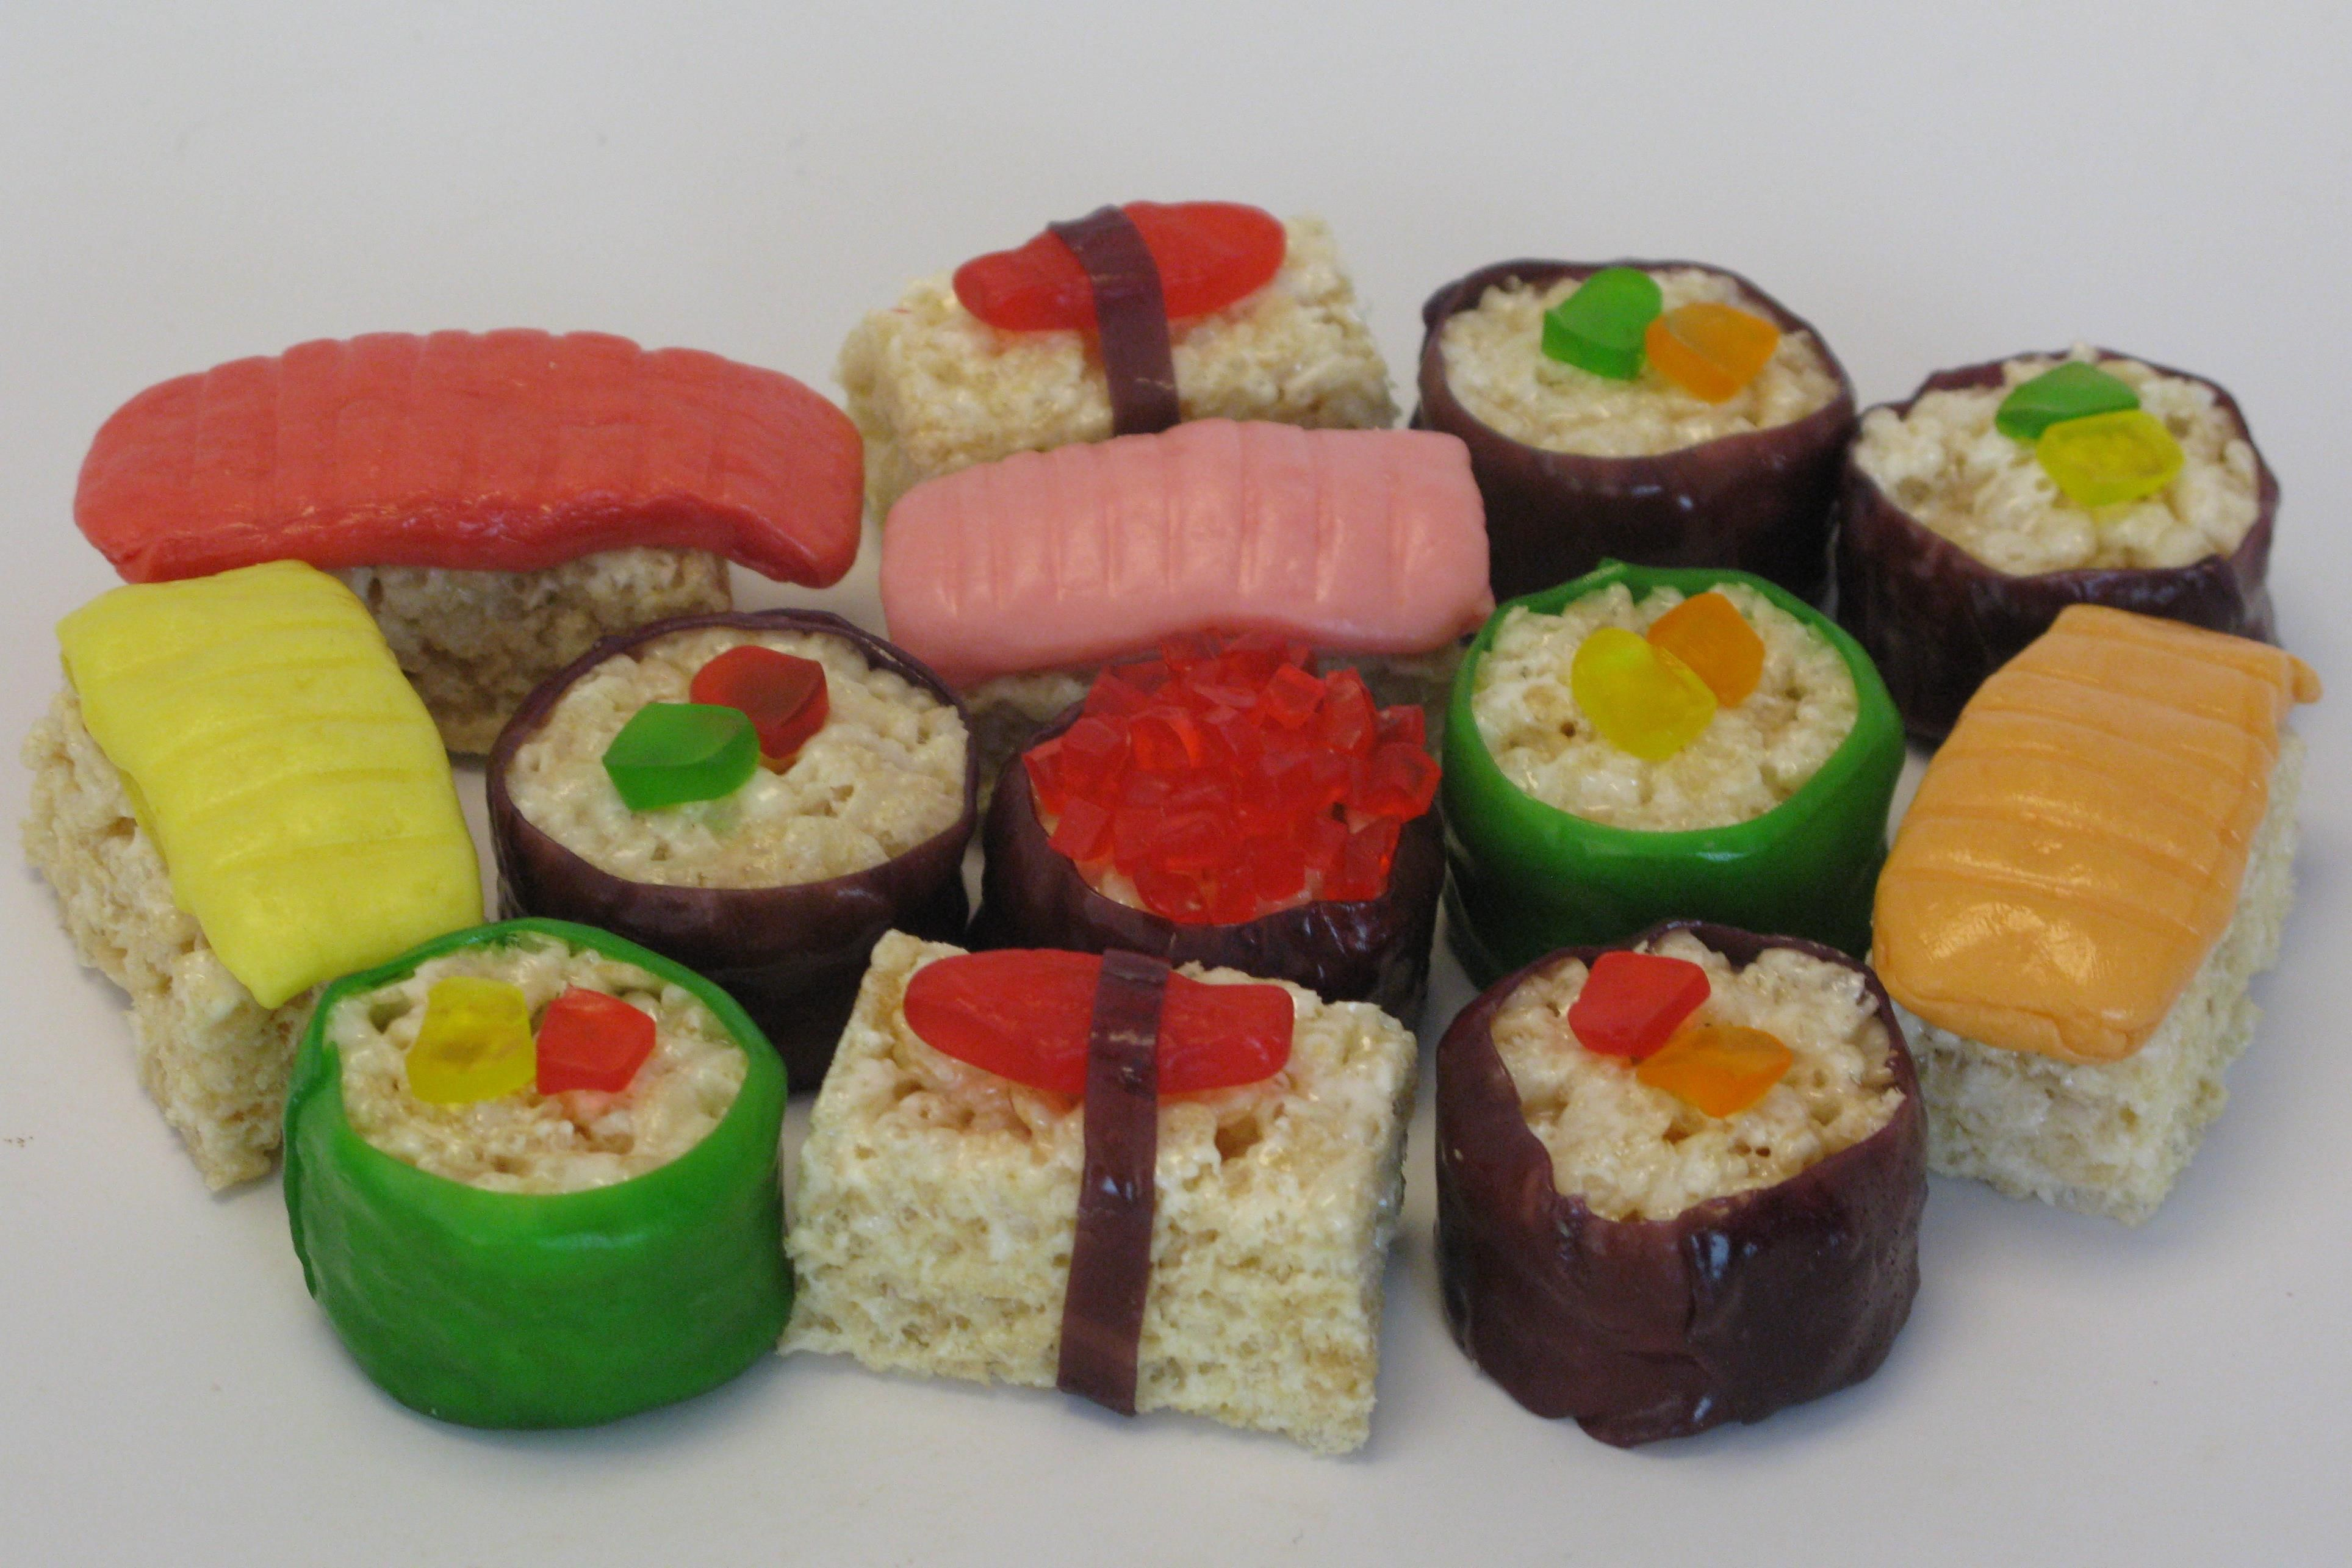 Candy Sushi!  Made with rice krispie treats, fruit roll ups, starbursts, Swedish fish, and gummy worms. #candysushi Candy Sushi!  Made with rice krispie treats, fruit roll ups, starbursts, Swedish fish, and gummy worms. #candysushi Candy Sushi!  Made with rice krispie treats, fruit roll ups, starbursts, Swedish fish, and gummy worms. #candysushi Candy Sushi!  Made with rice krispie treats, fruit roll ups, starbursts, Swedish fish, and gummy worms. #candysushi Candy Sushi!  Made with rice krispie #candysushi